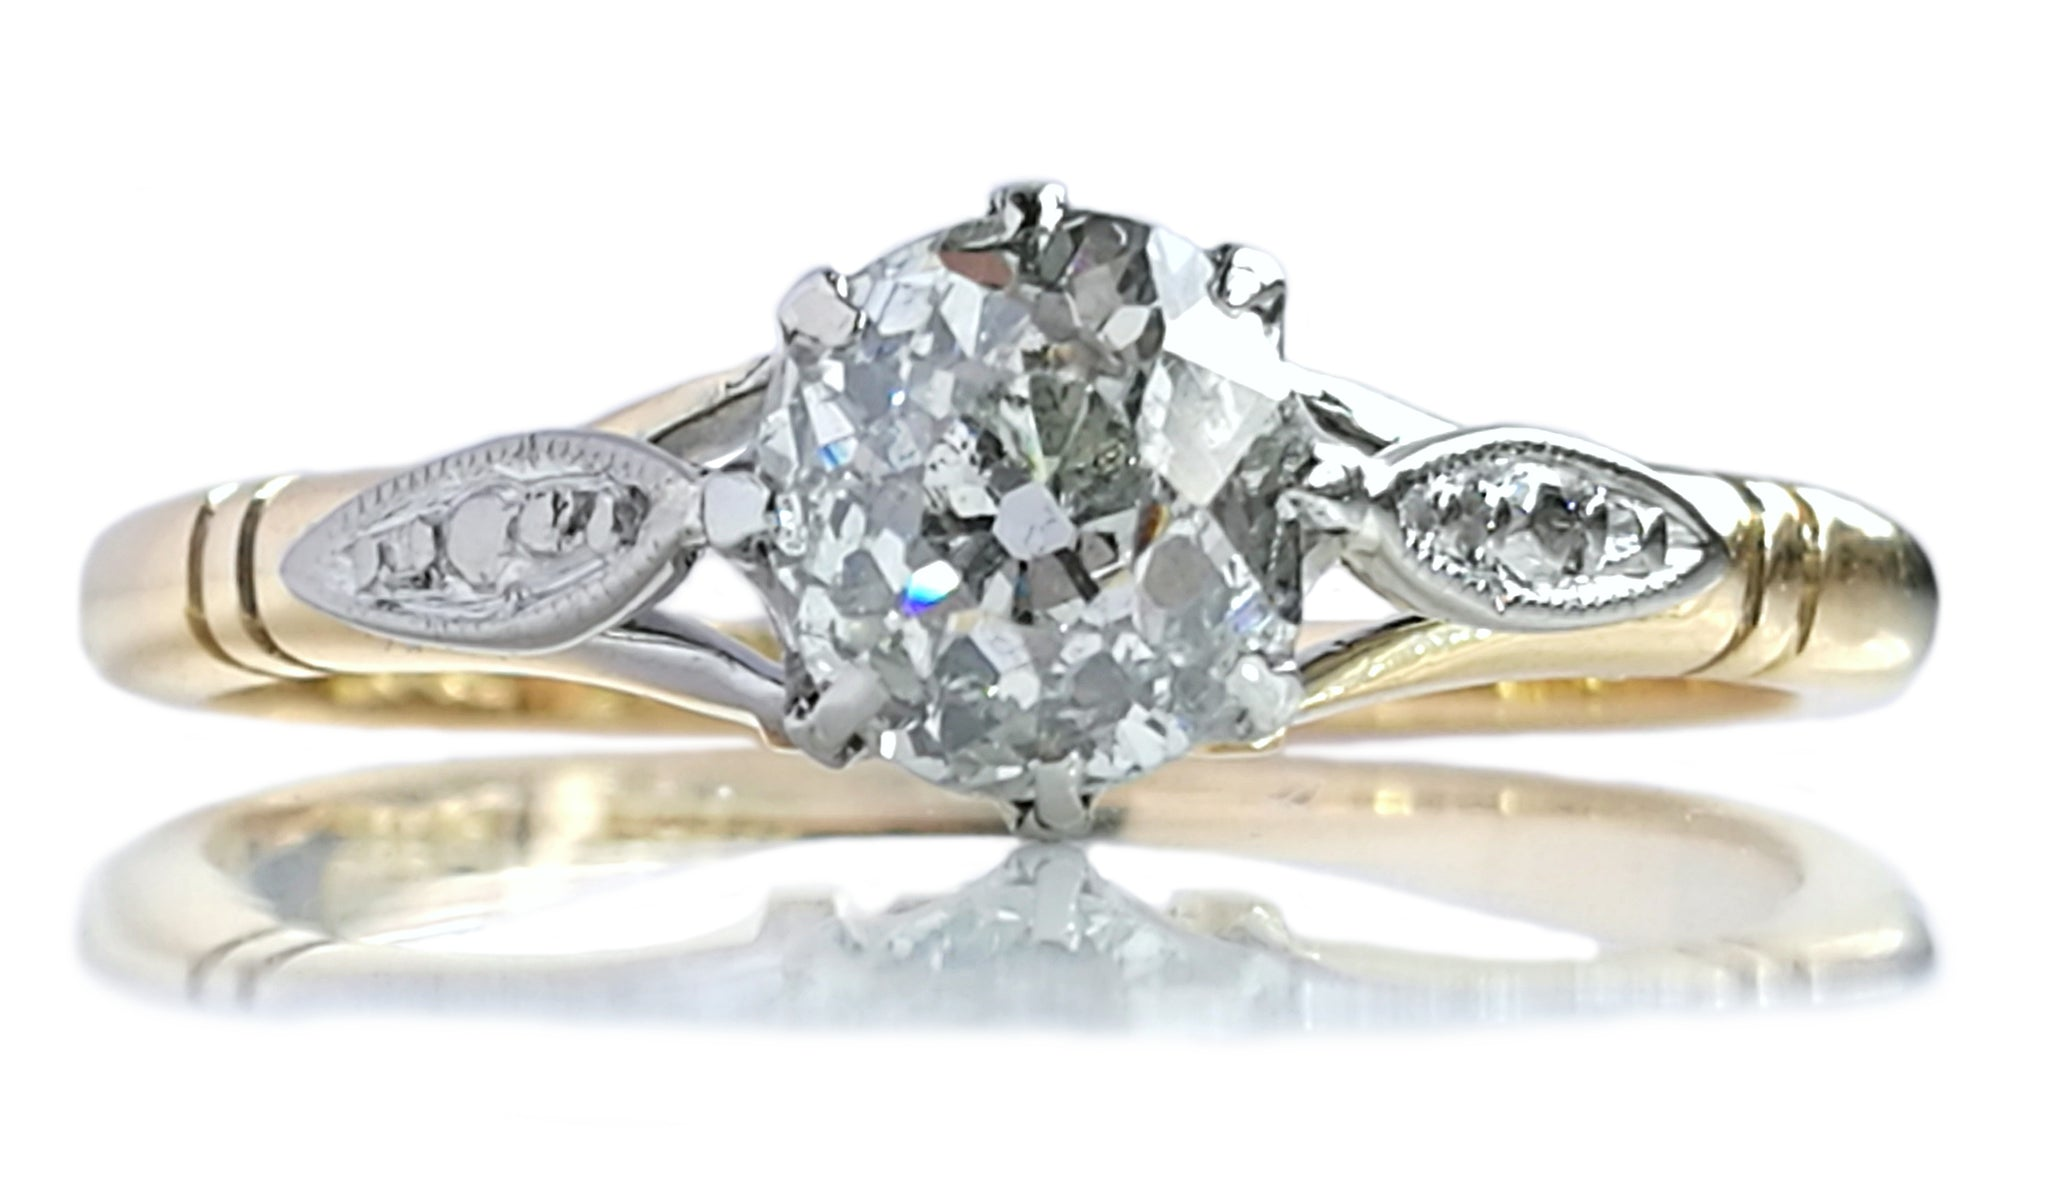 Antique Victorian 0.50ct Old Cut Diamond Engagement Ring in 18k Gold & Platinum